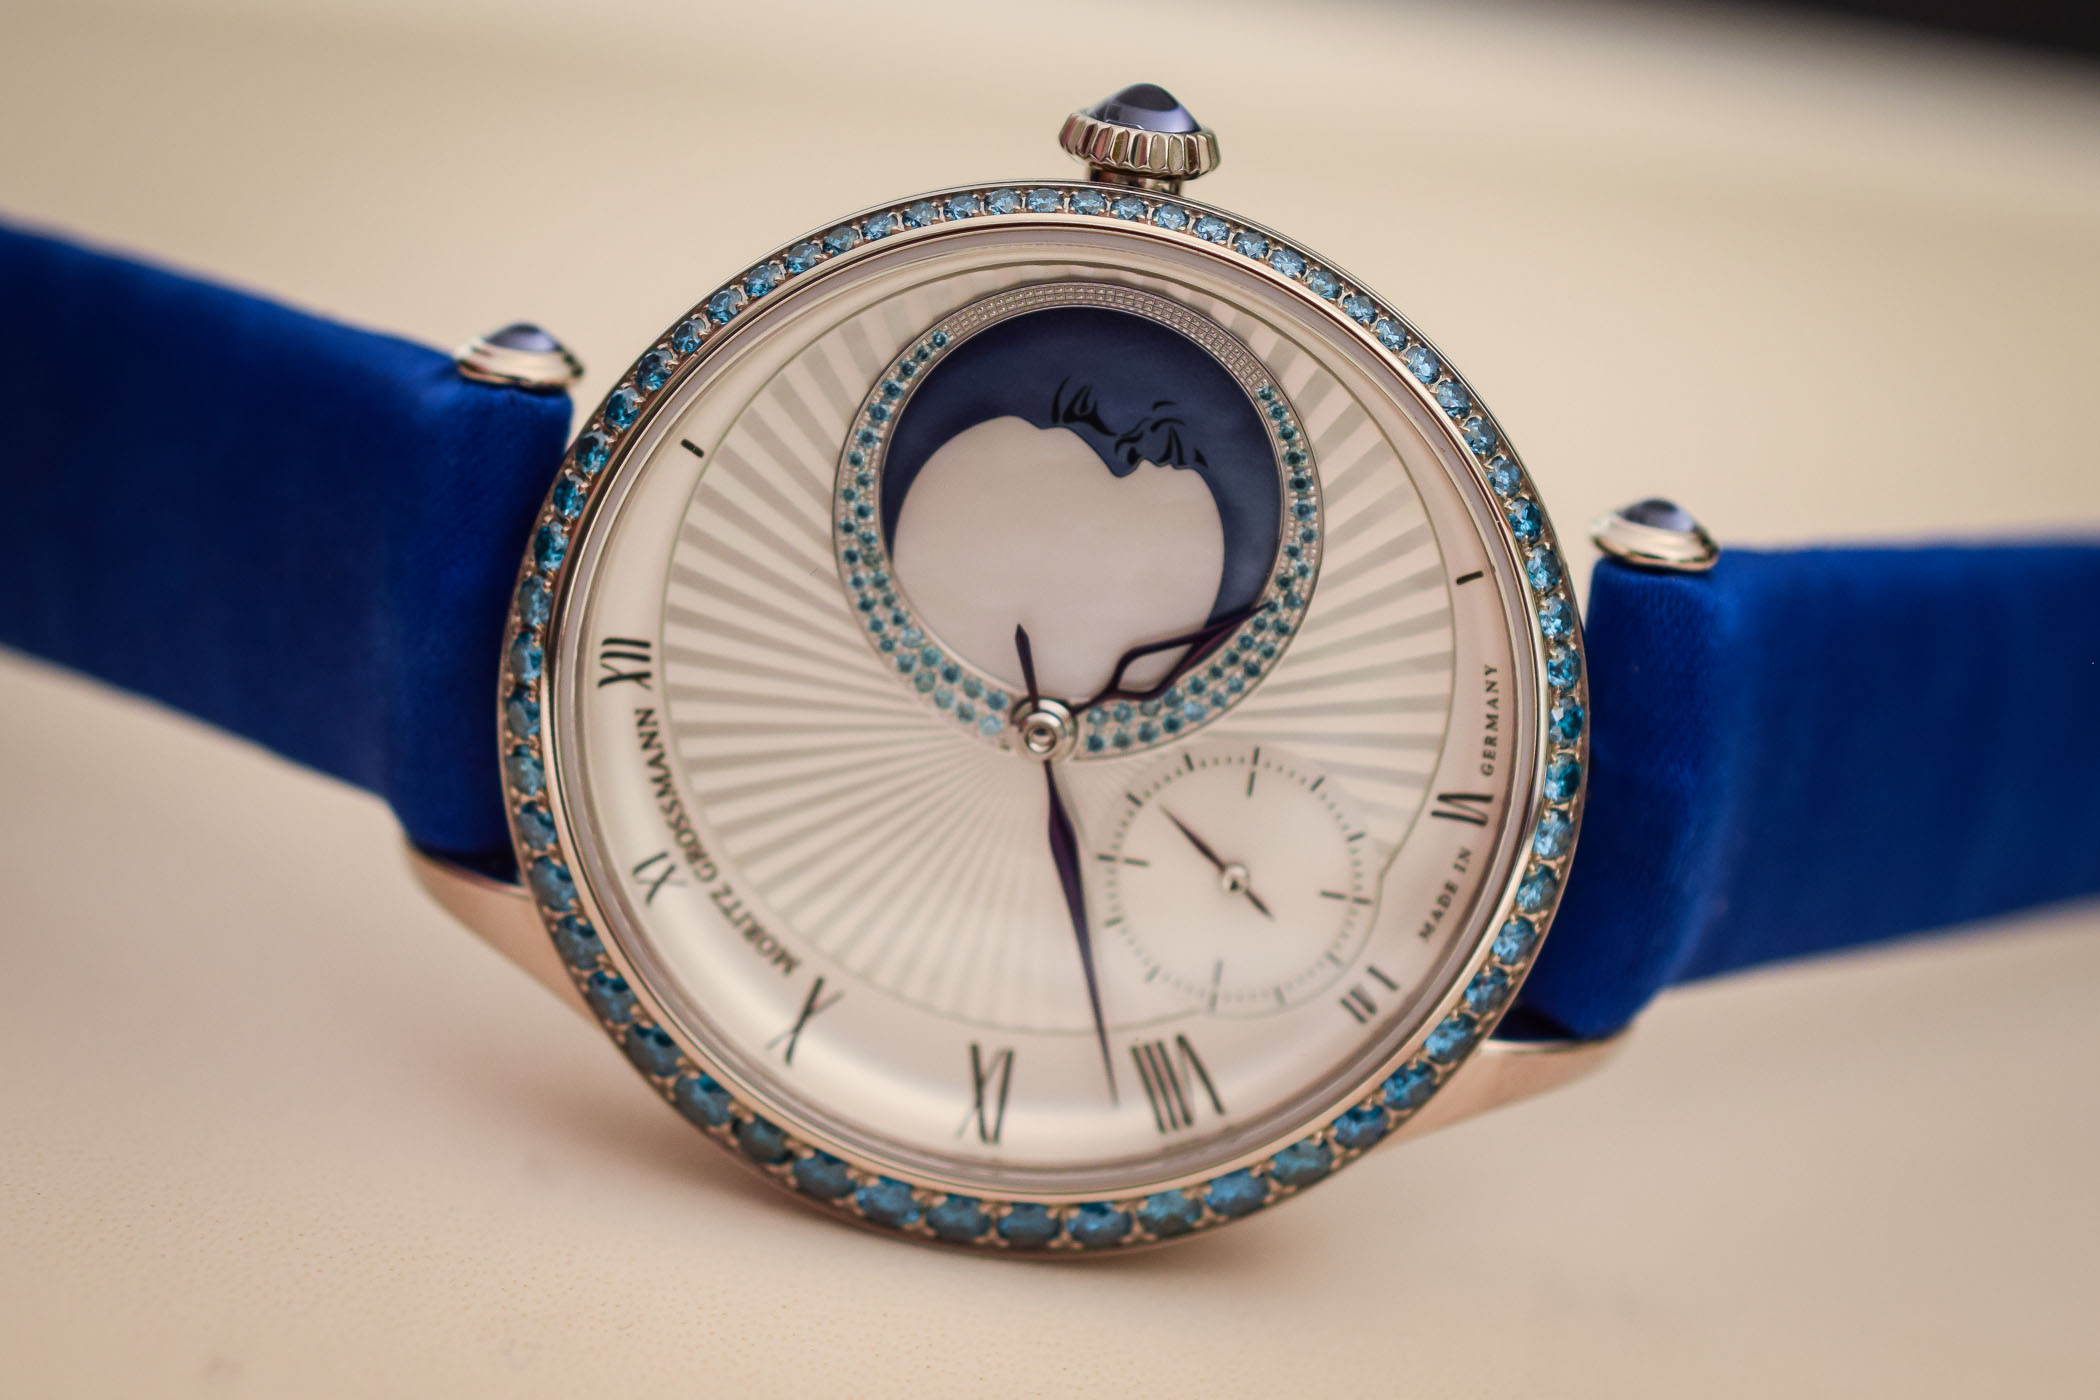 Moritz Grossmann Tefnut Sleeping Beauty Designed by Michael Koh